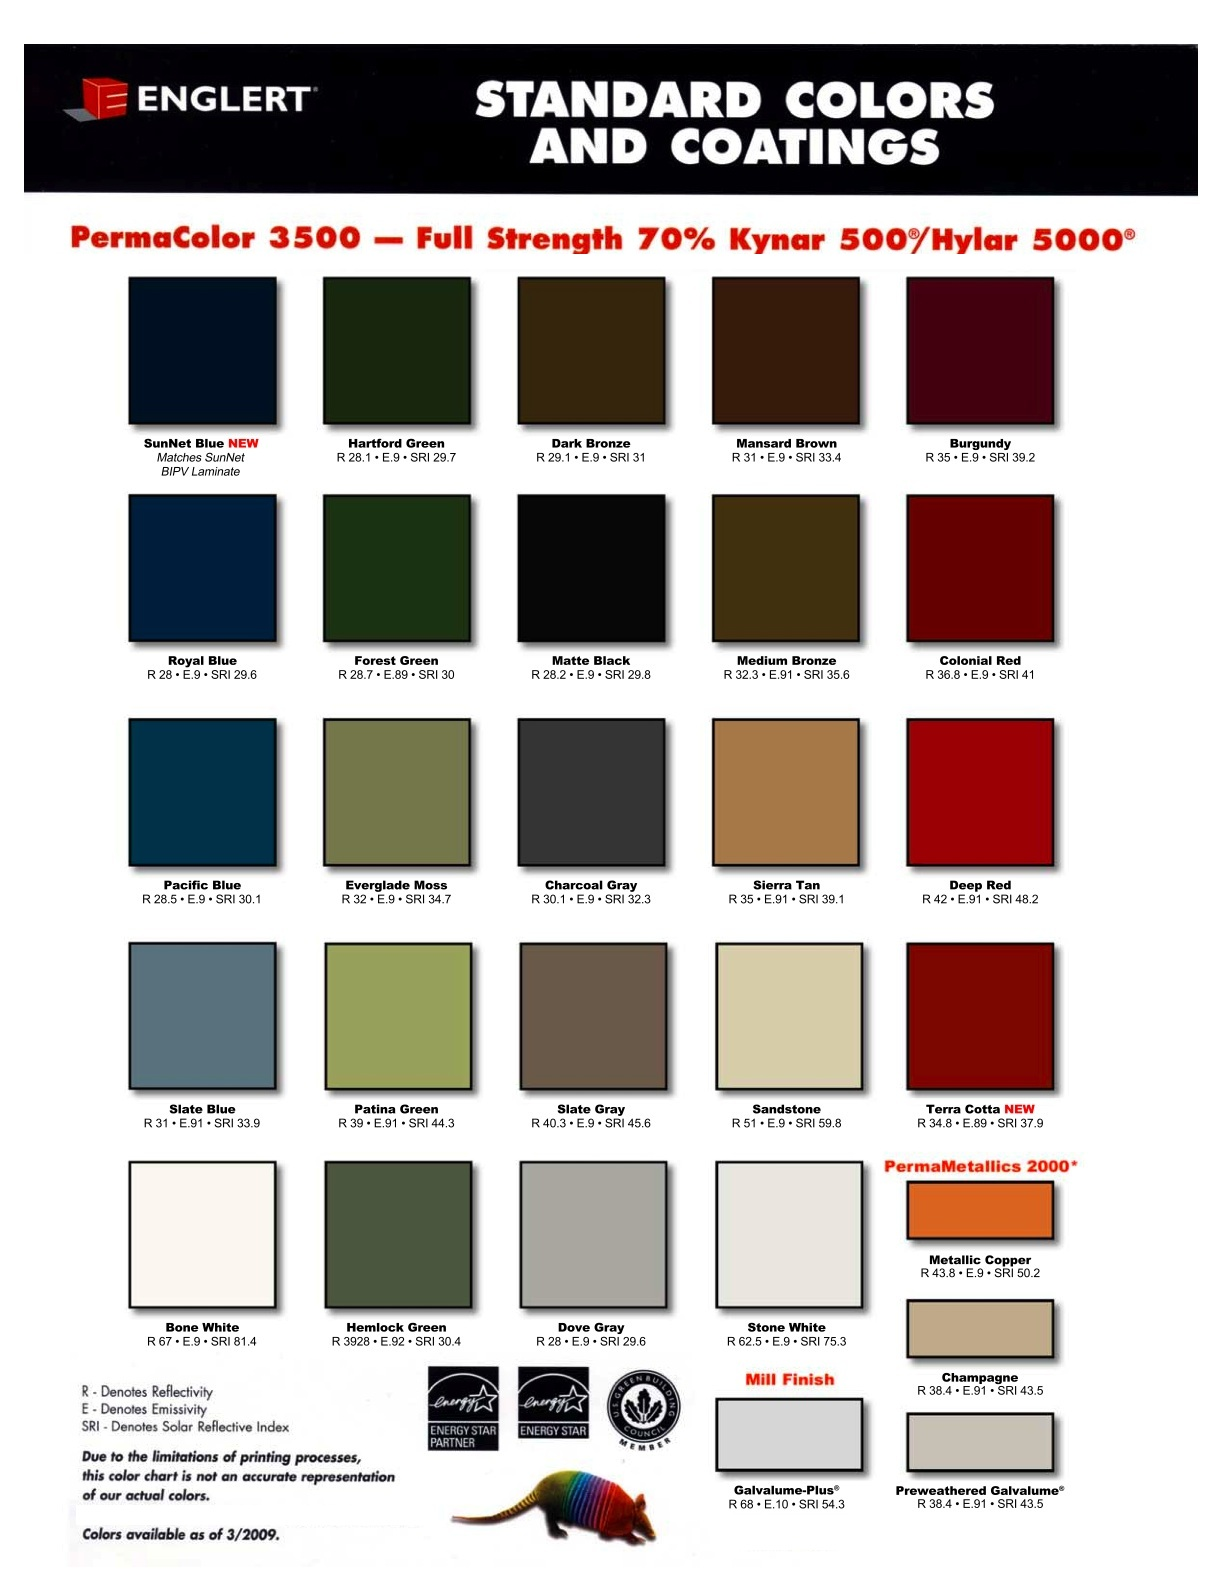 Many more colors are available than shown. Click to enlarge